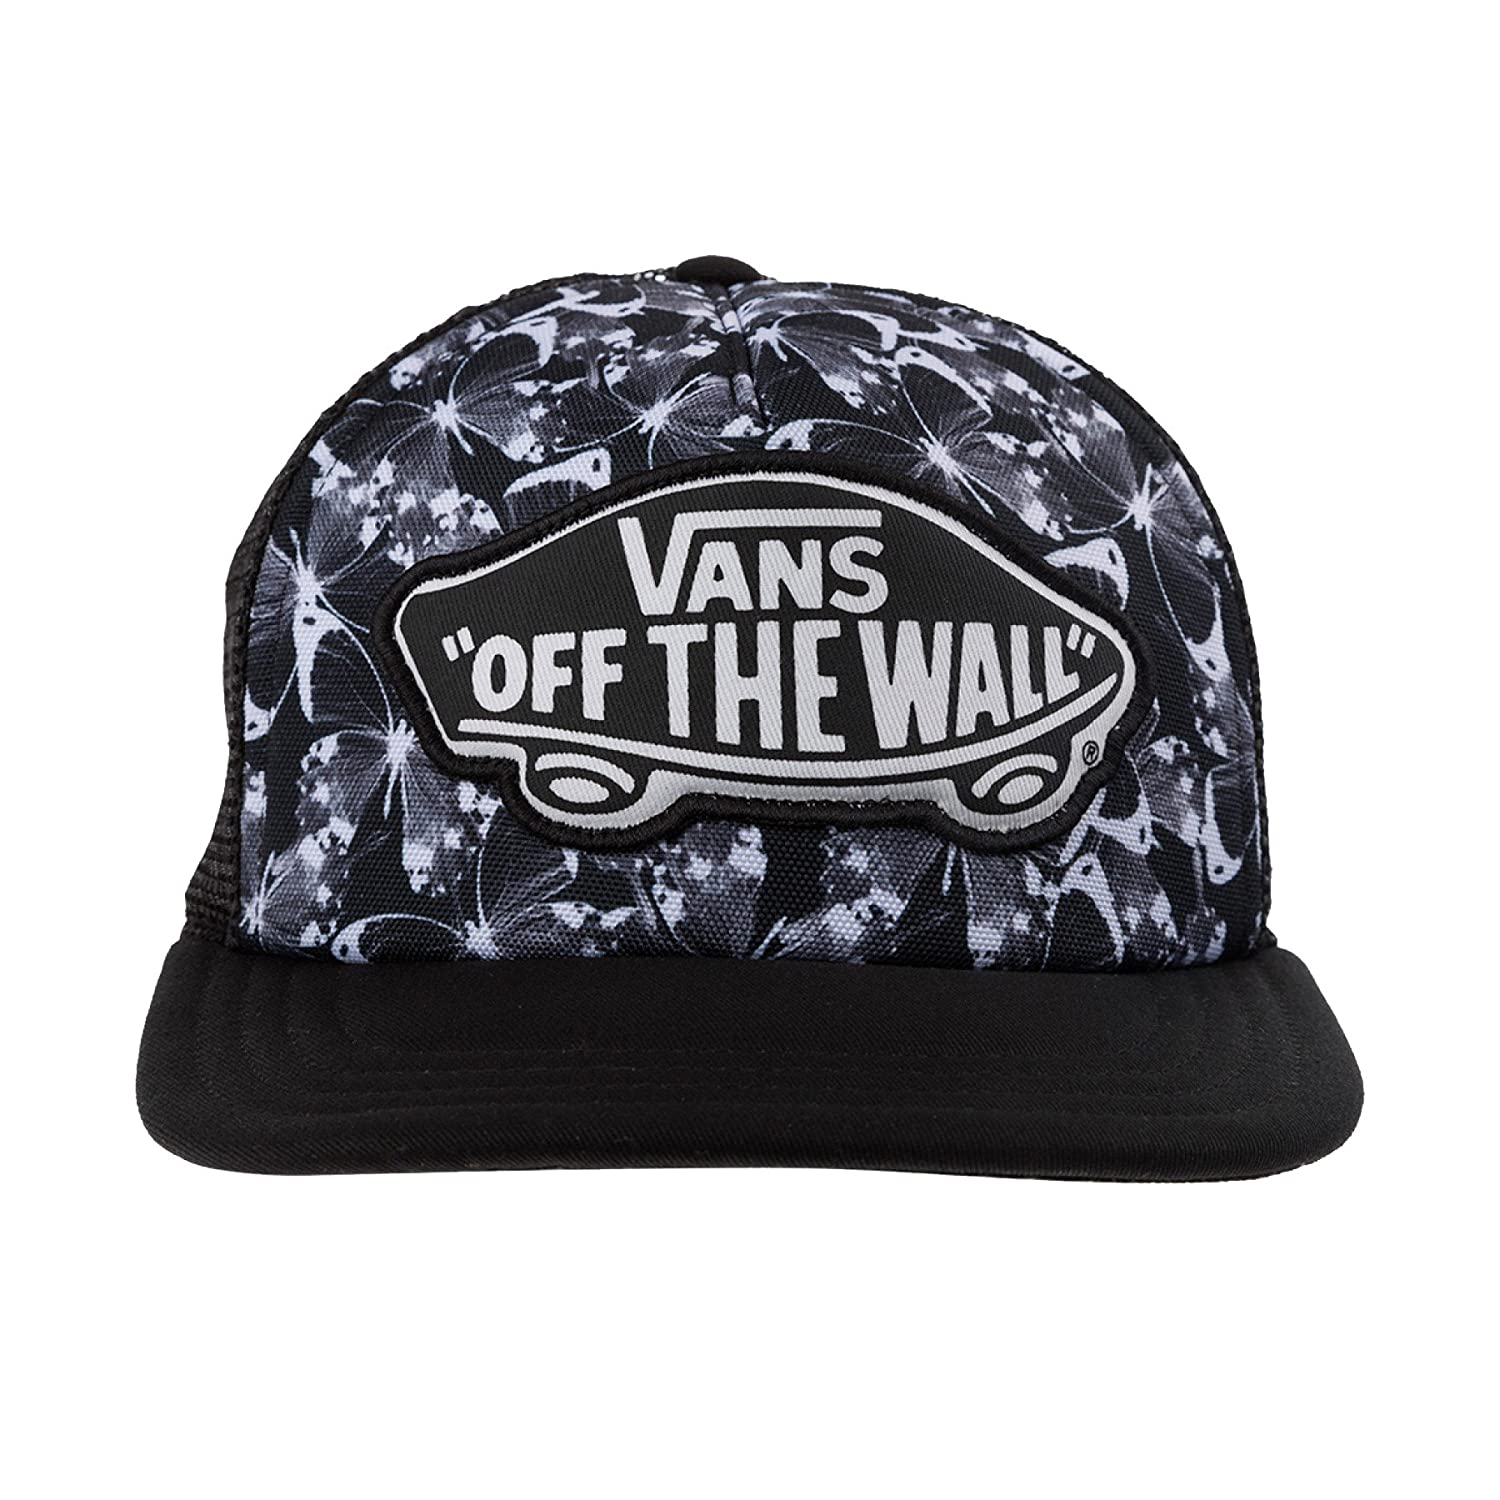 Gorra Casual Hombre Vans Beach Girl Truc: Amazon.es: Zapatos y ...